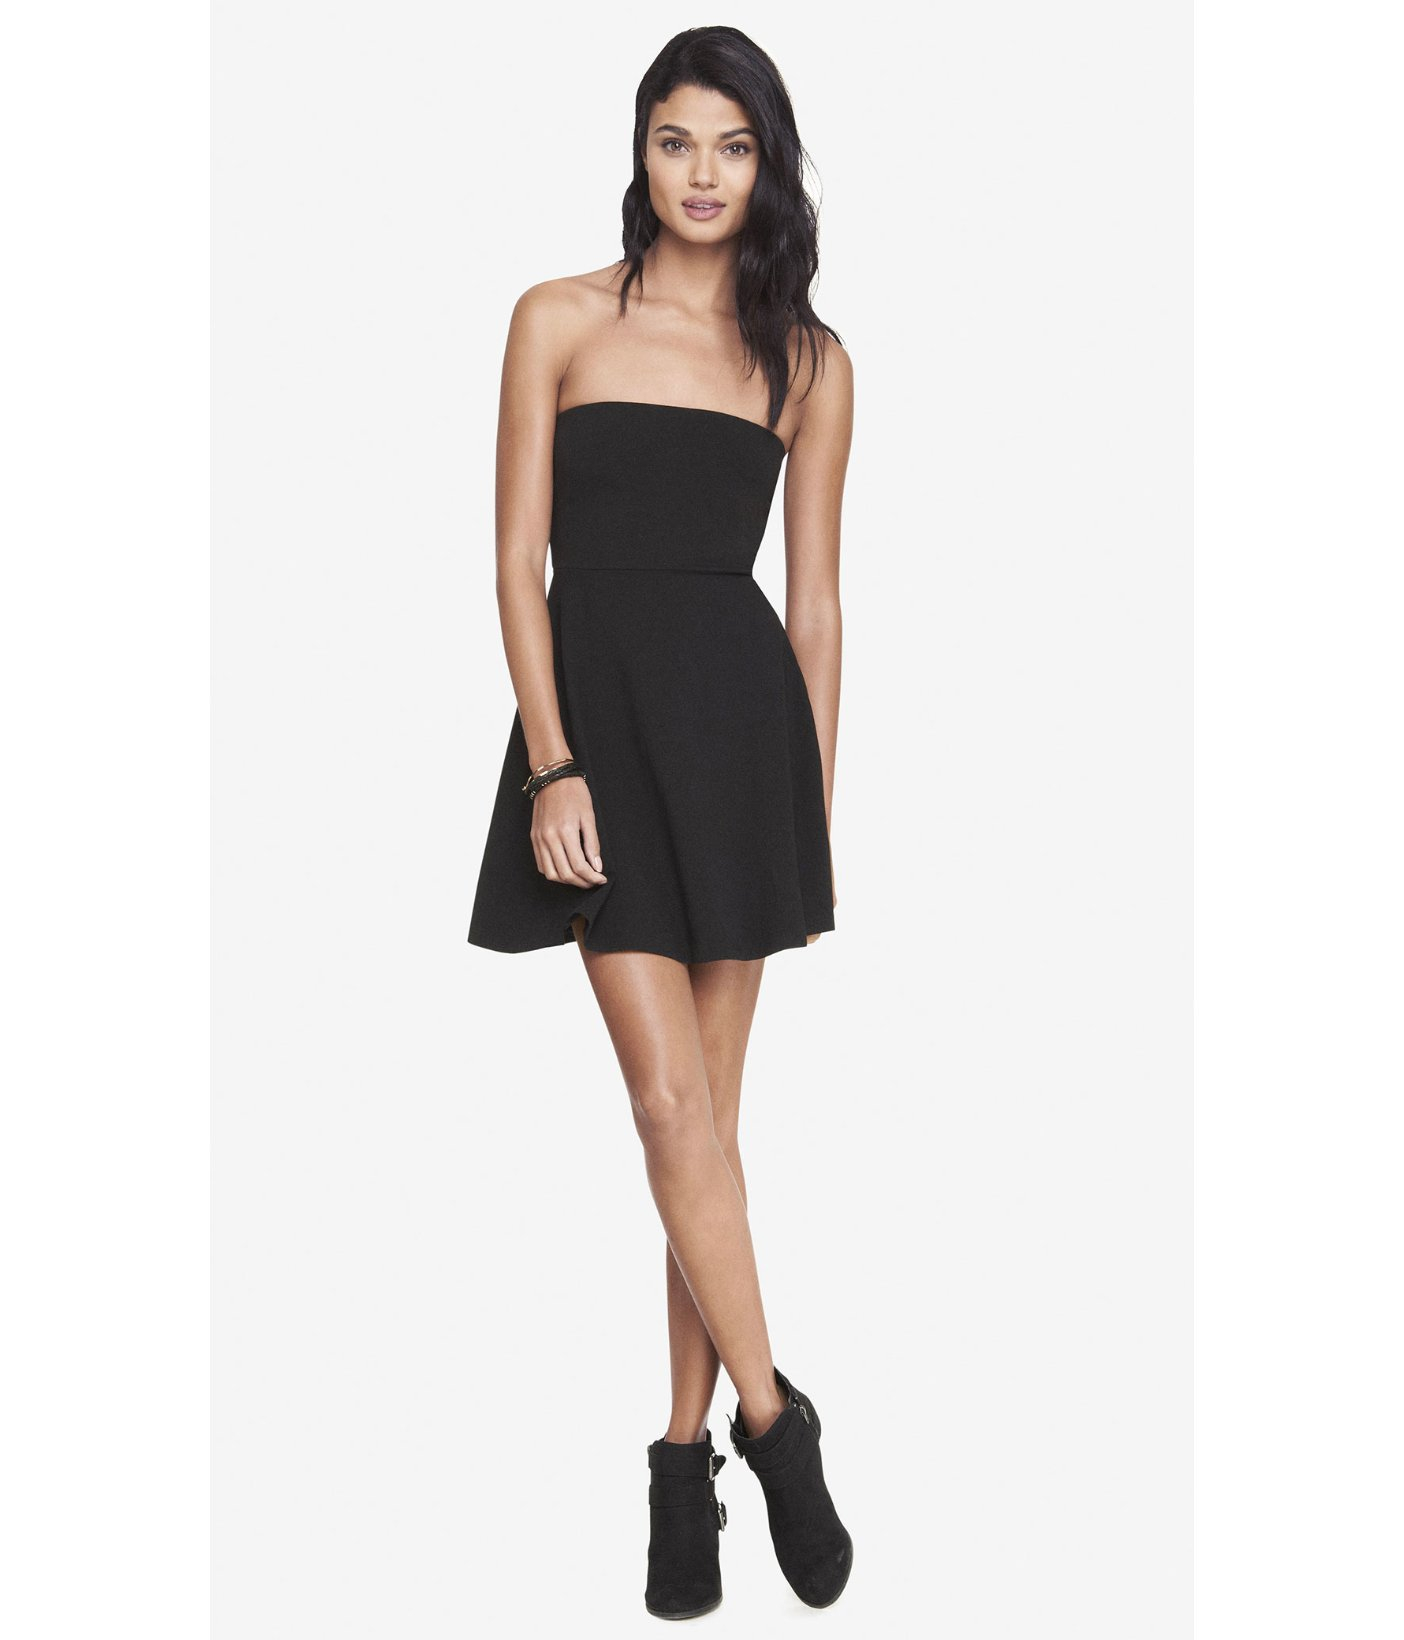 Express Black Strapless Stretch Cotton Skater Dress in Black | Lyst